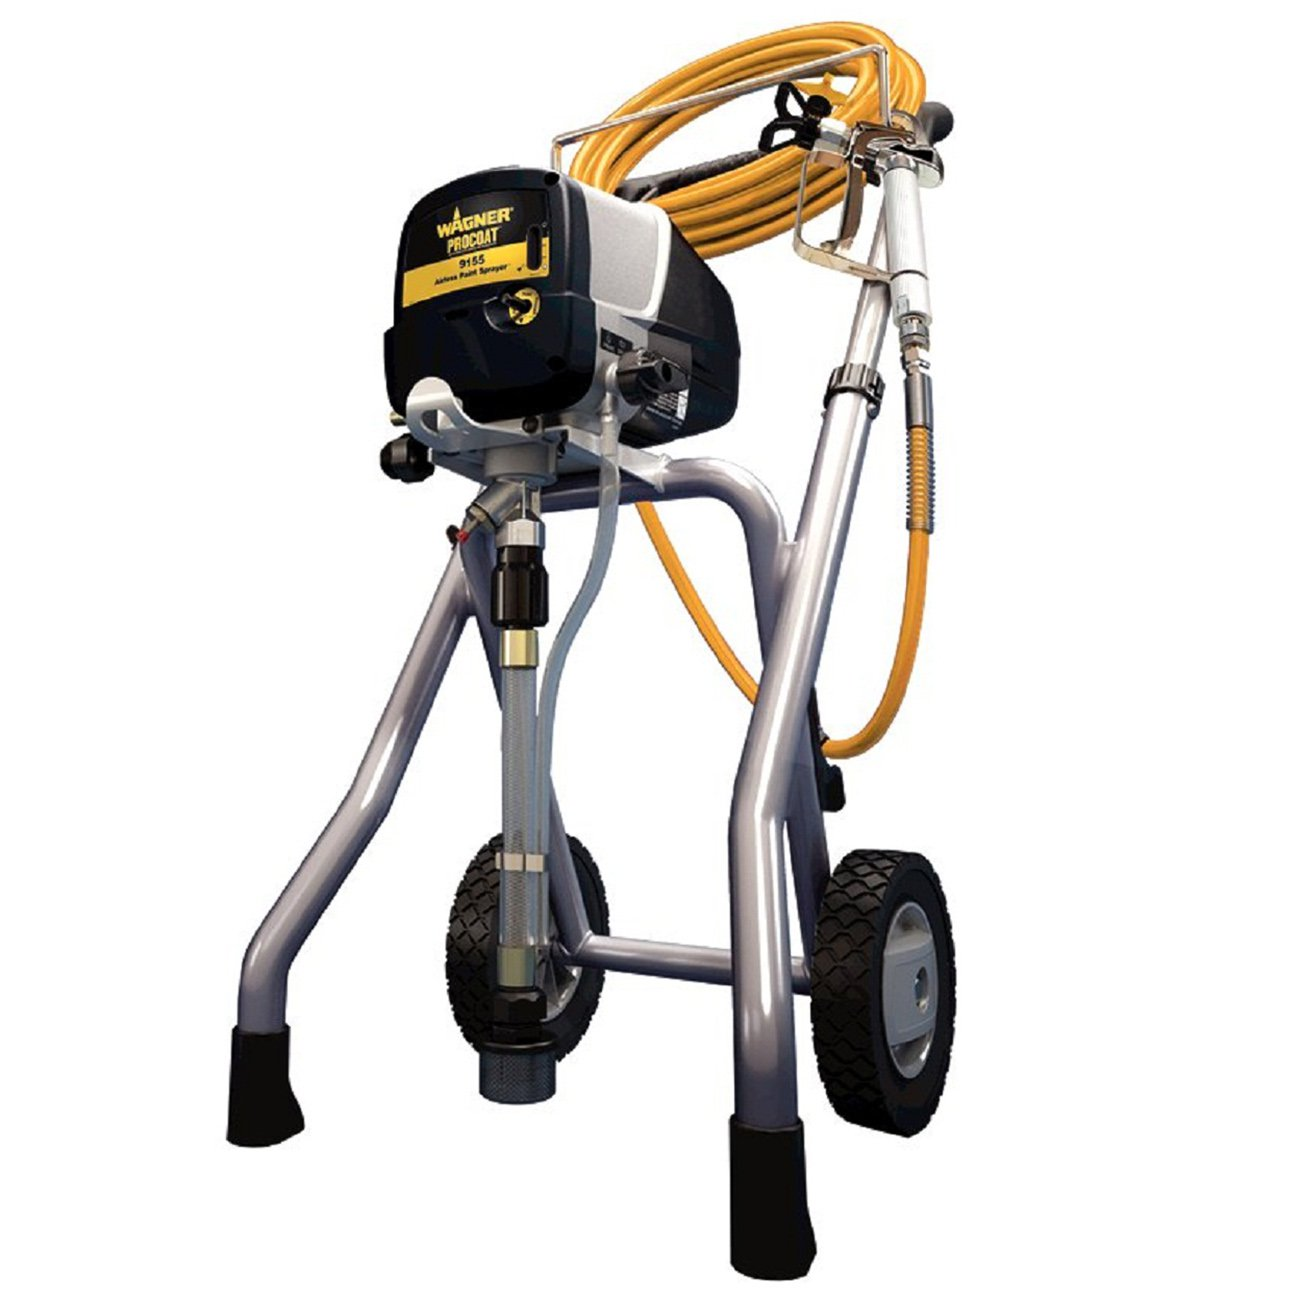 Wagner ProCoat 9155 Airless Piston Pump 5/8 HP 15 Amp 3000 PSI Paint Sprayer